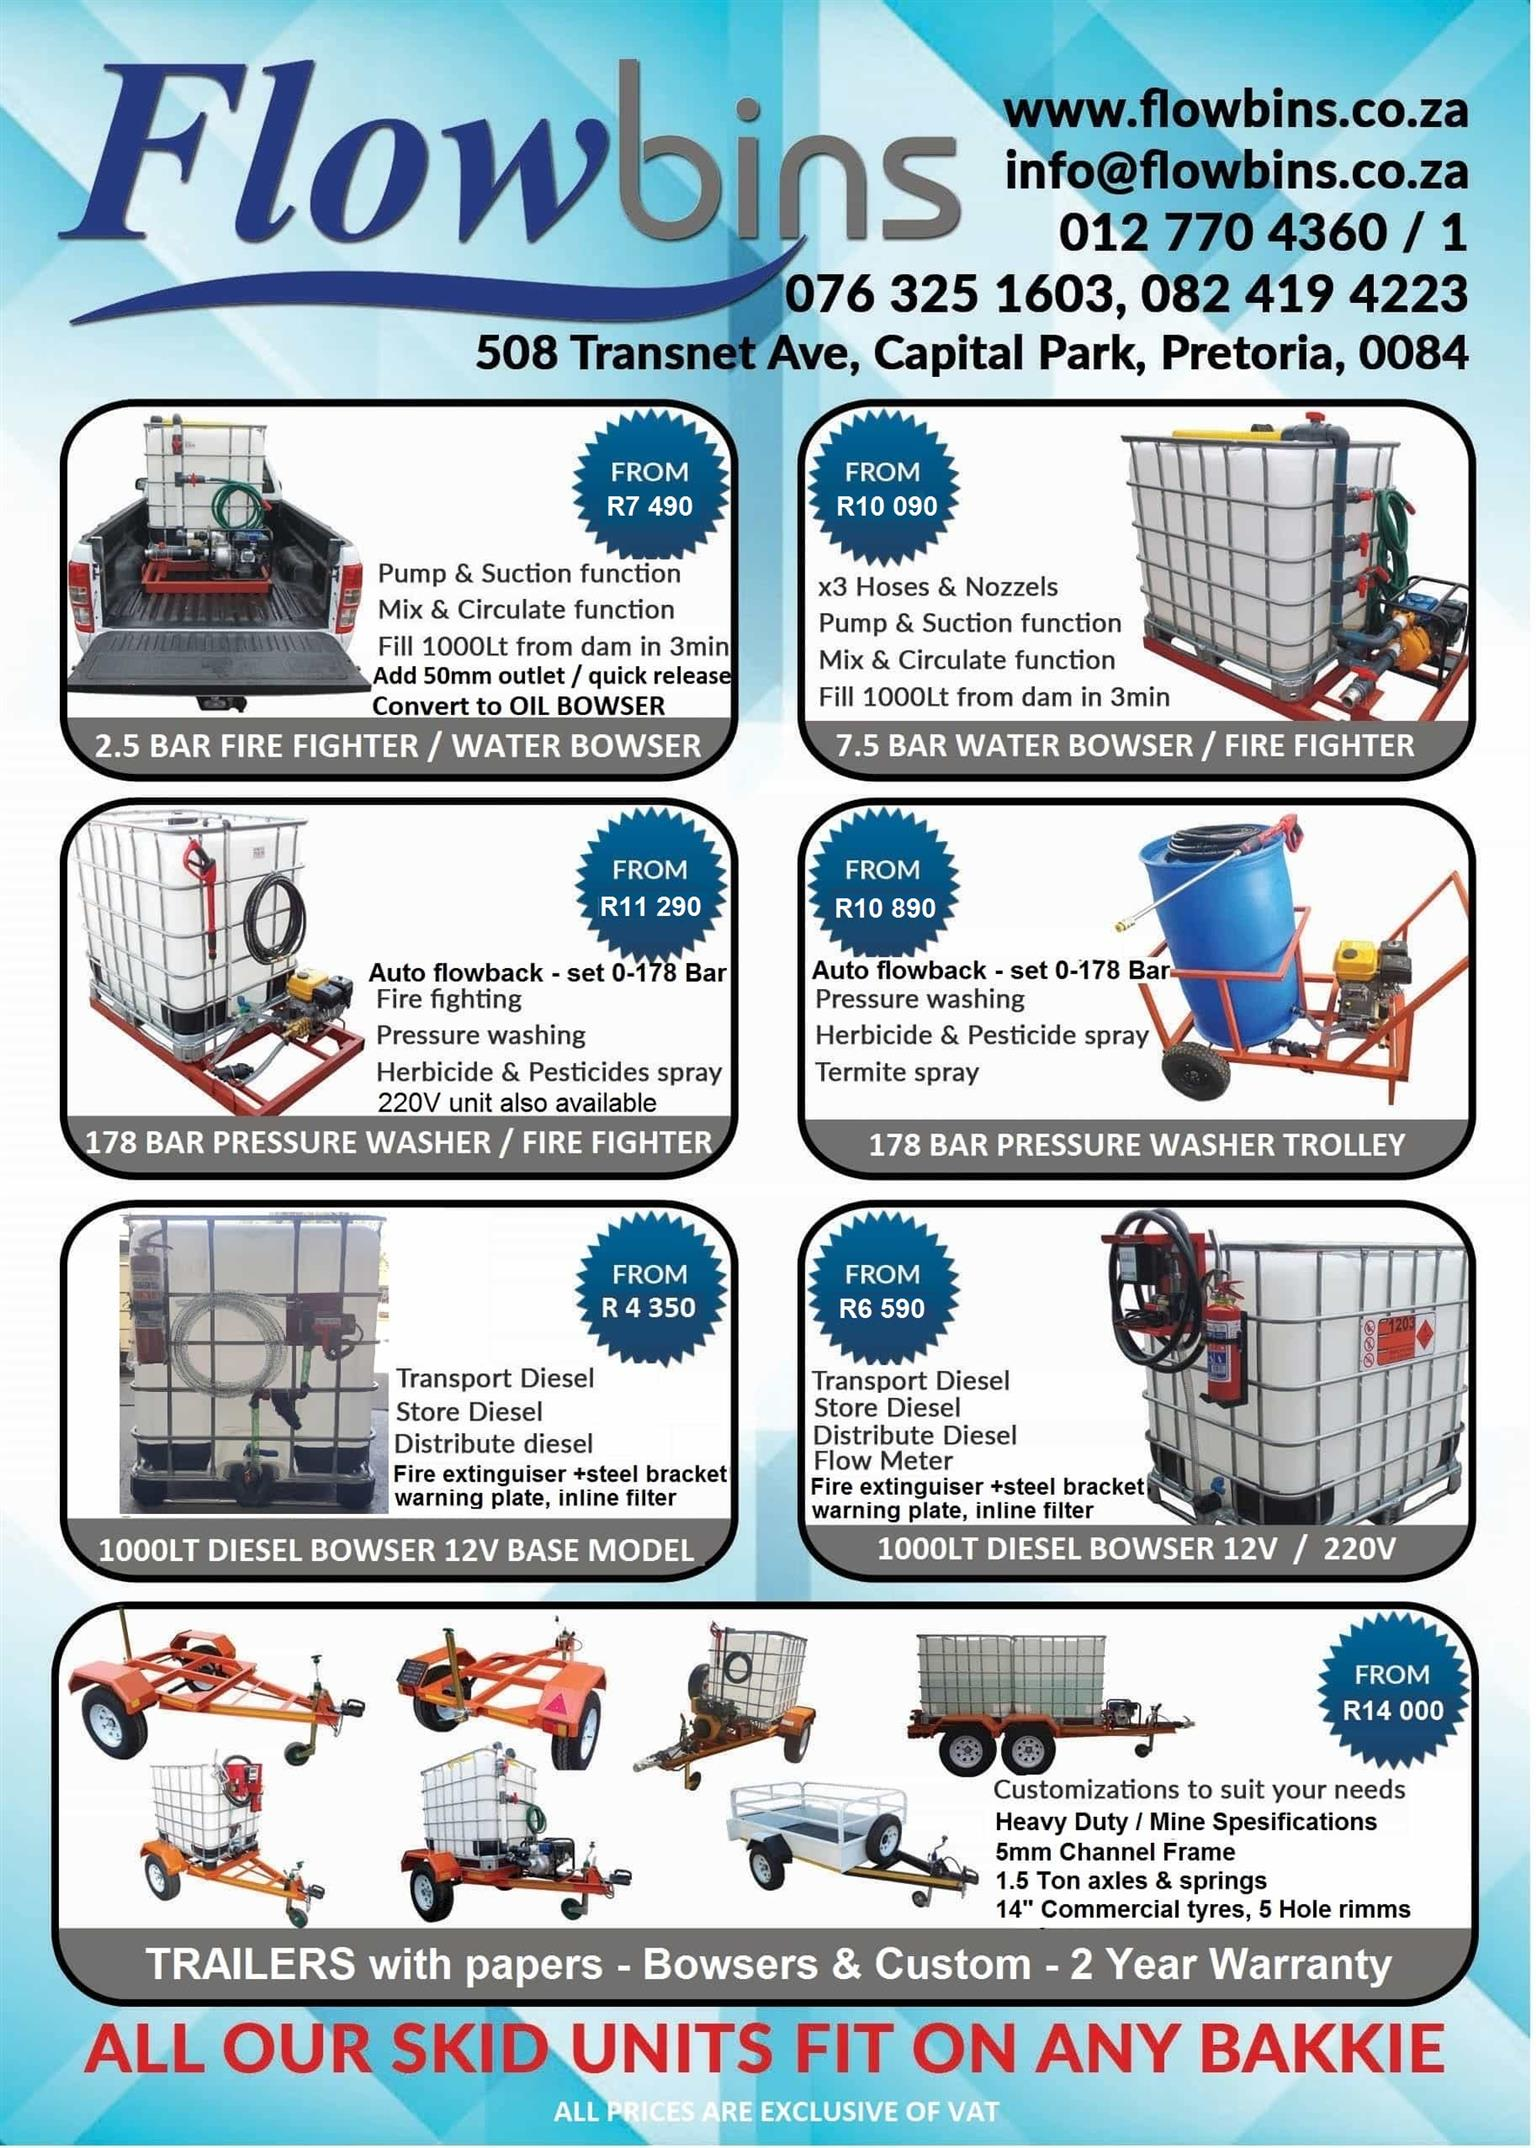 Gauteng: 1000L Flowbins (IBC): Adaptors, Spares, Piping & Fittings from R22